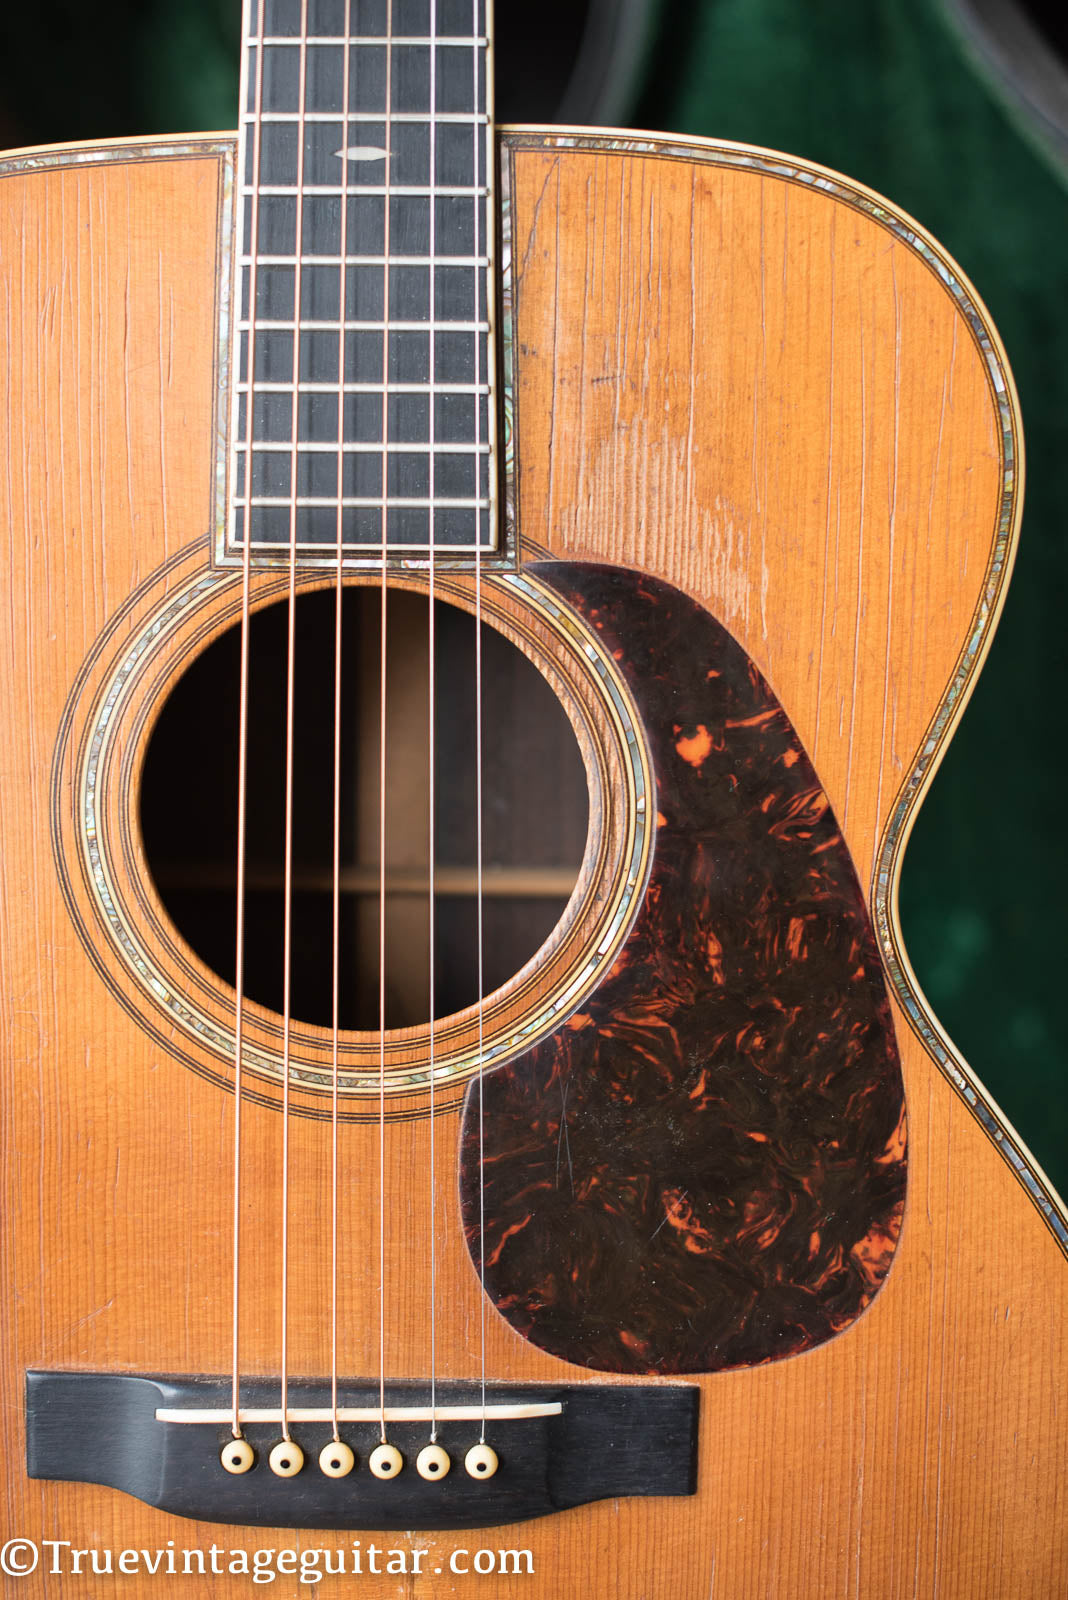 Pearl inlay, Vintage 1941 Martin 000-42 acoustic guitar